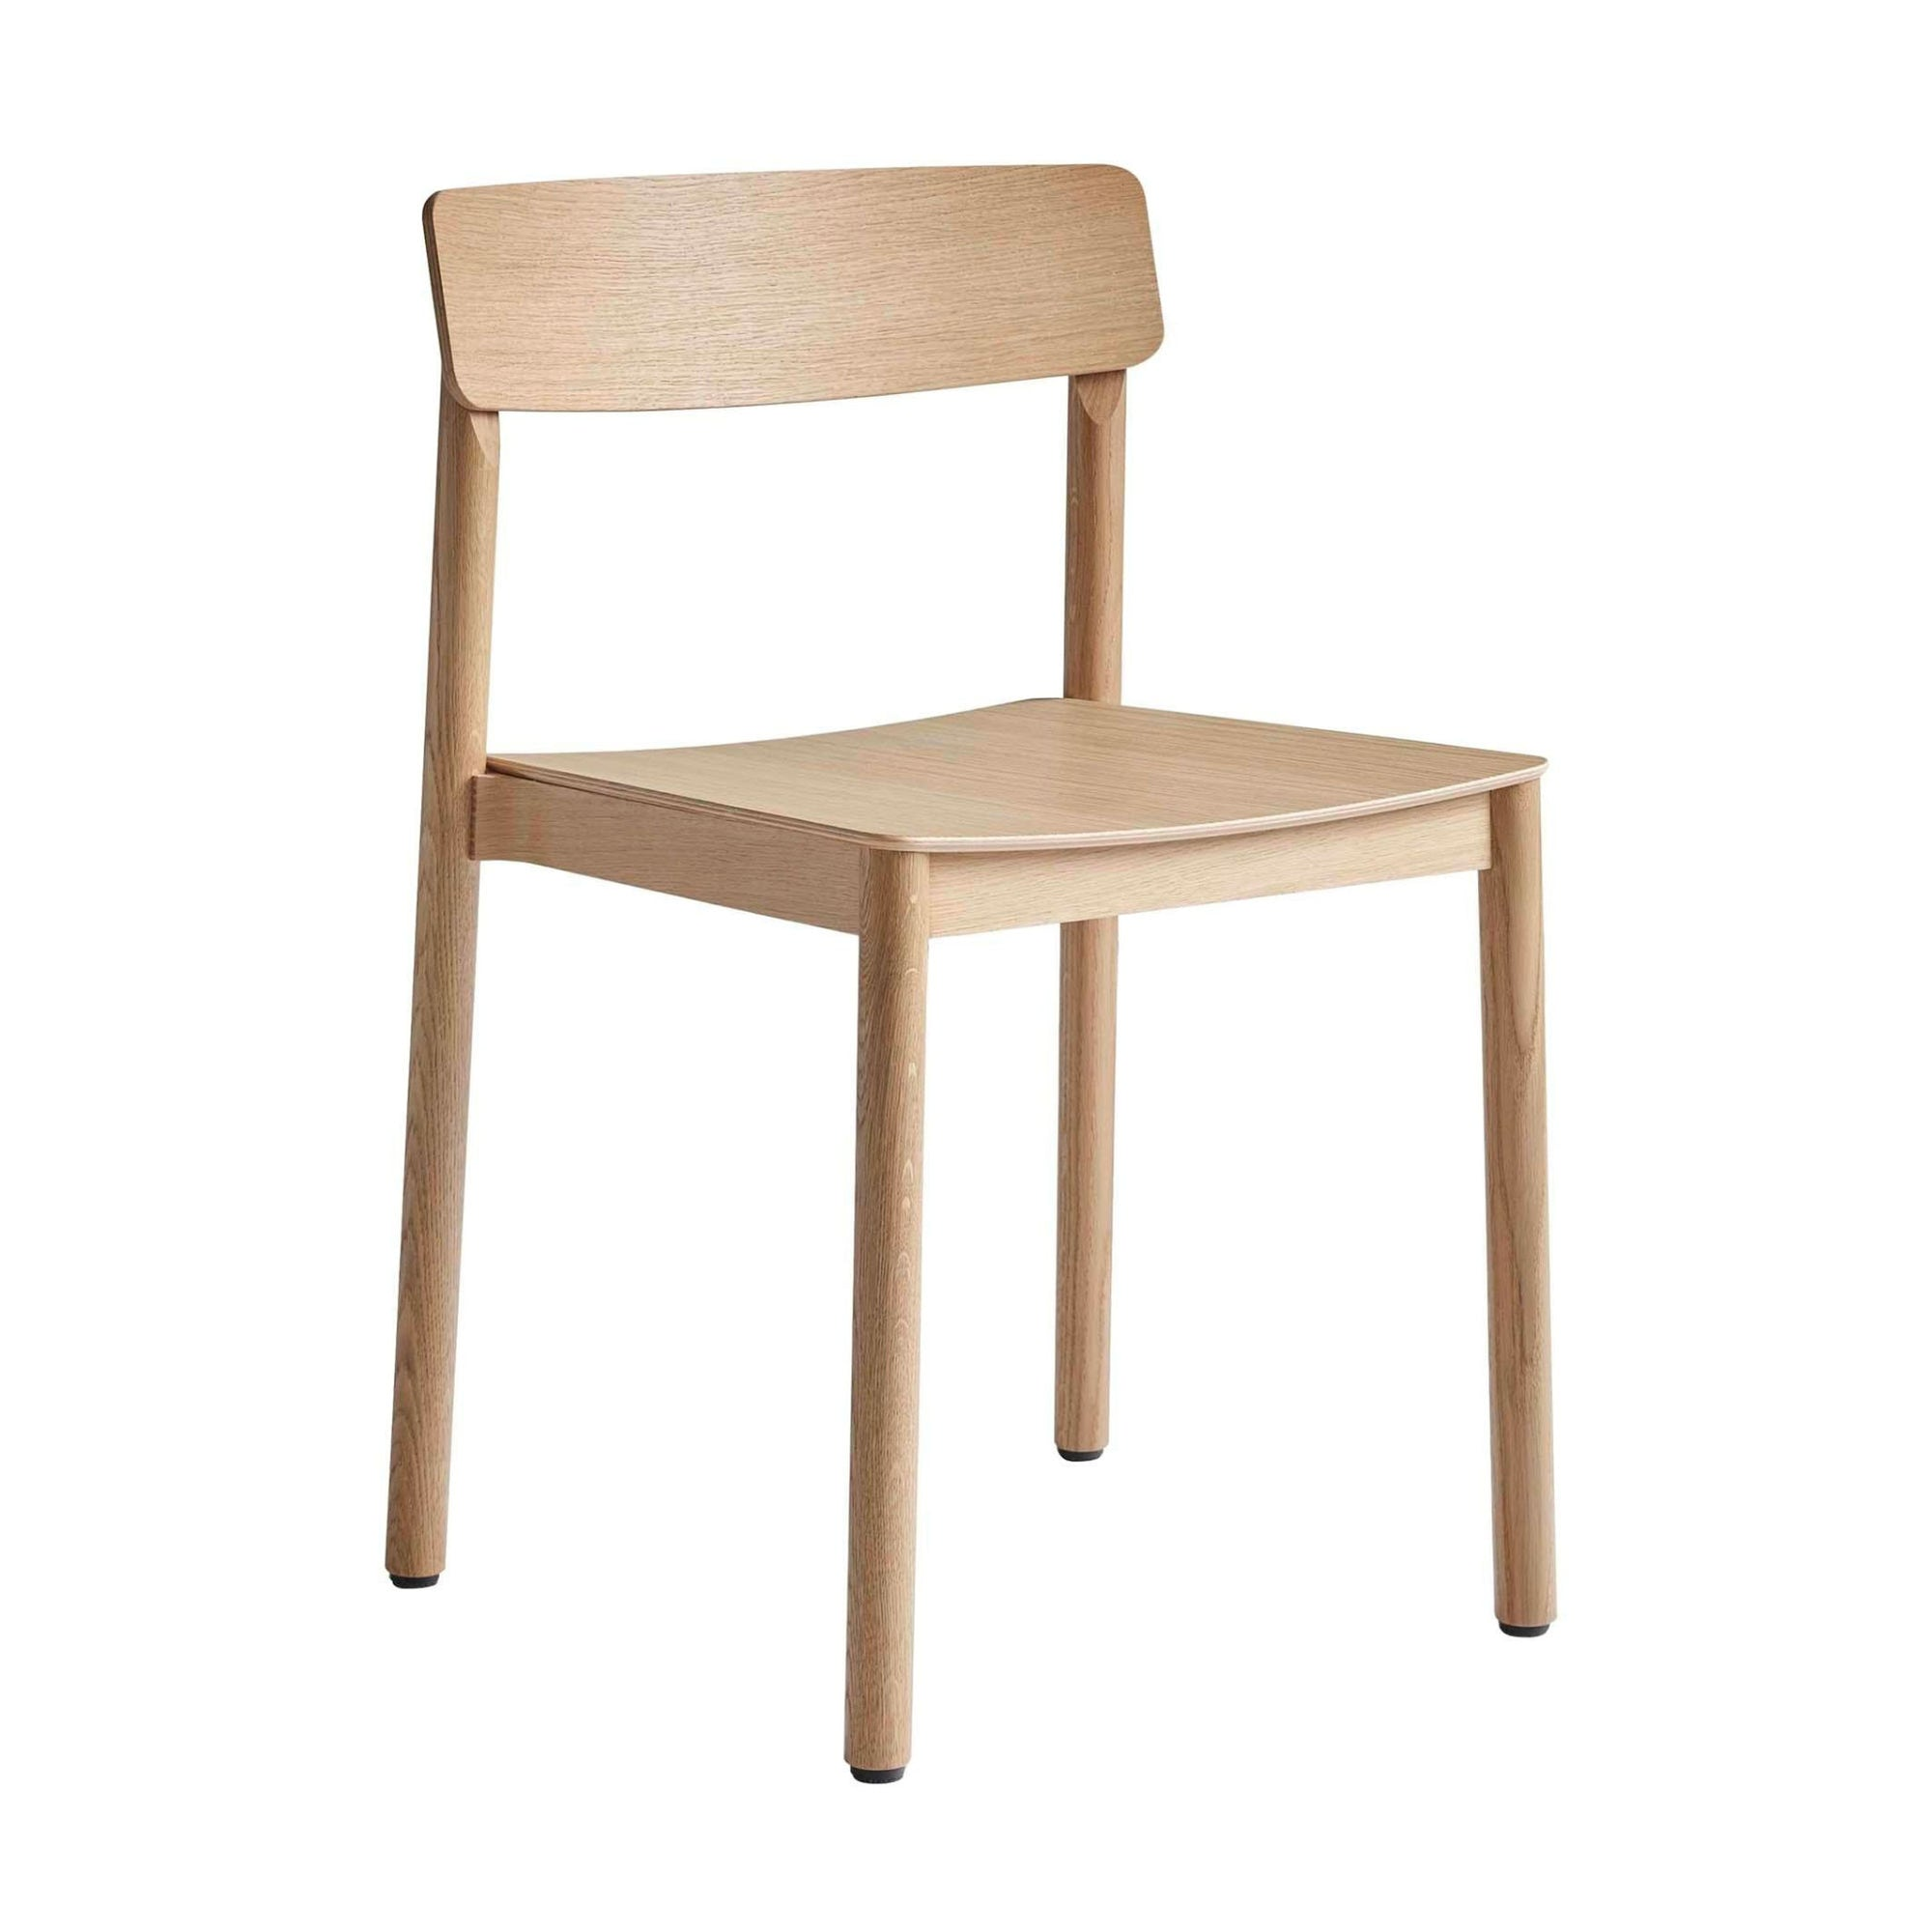 &Tradition Betty TK2 chair, oak